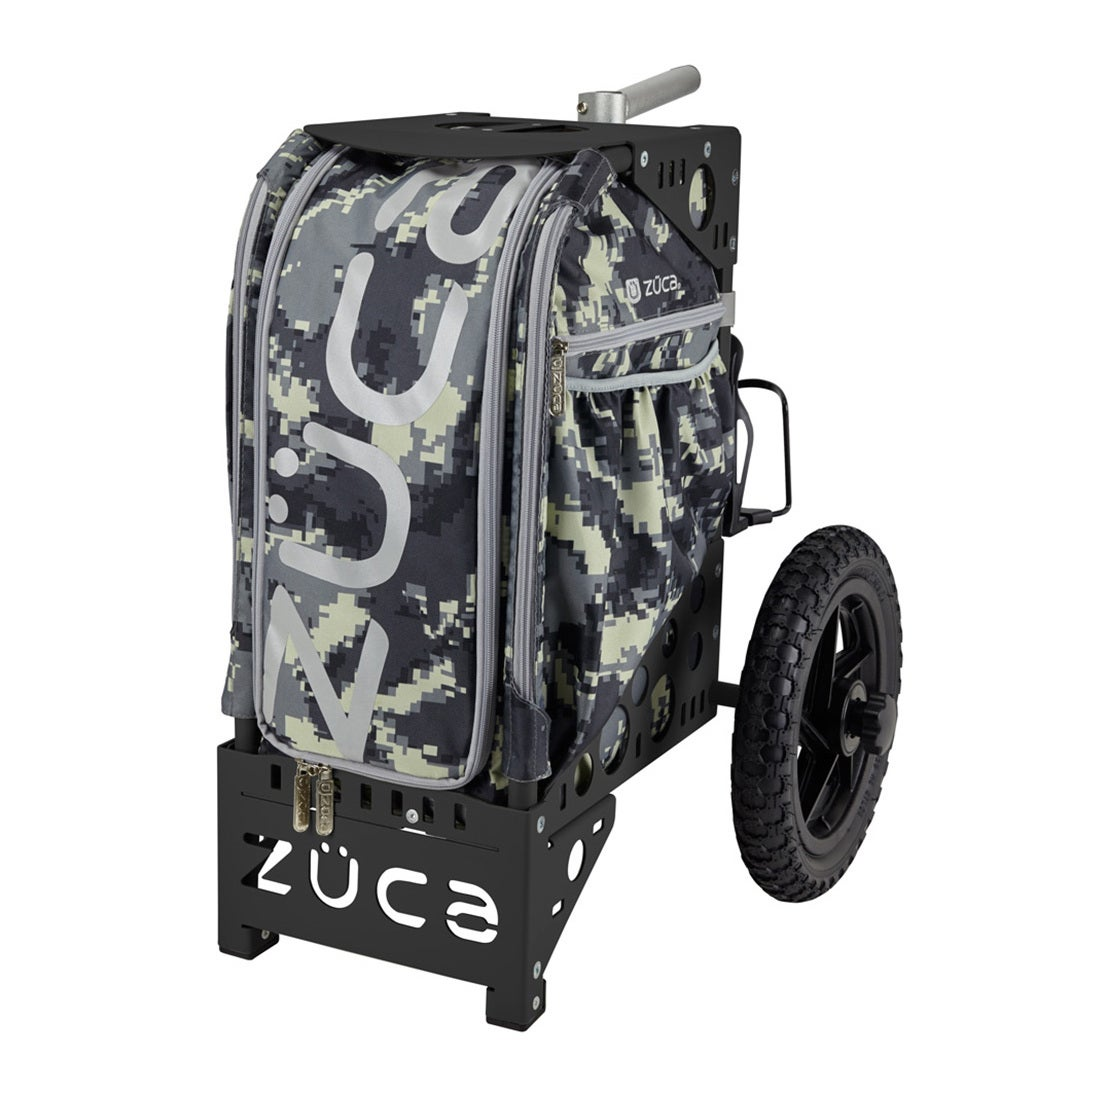 【SAC'S BAR】ズーカ ZUCA キャリーケース 1310 ALL-TERRAIN Anaconda/Black メンズ